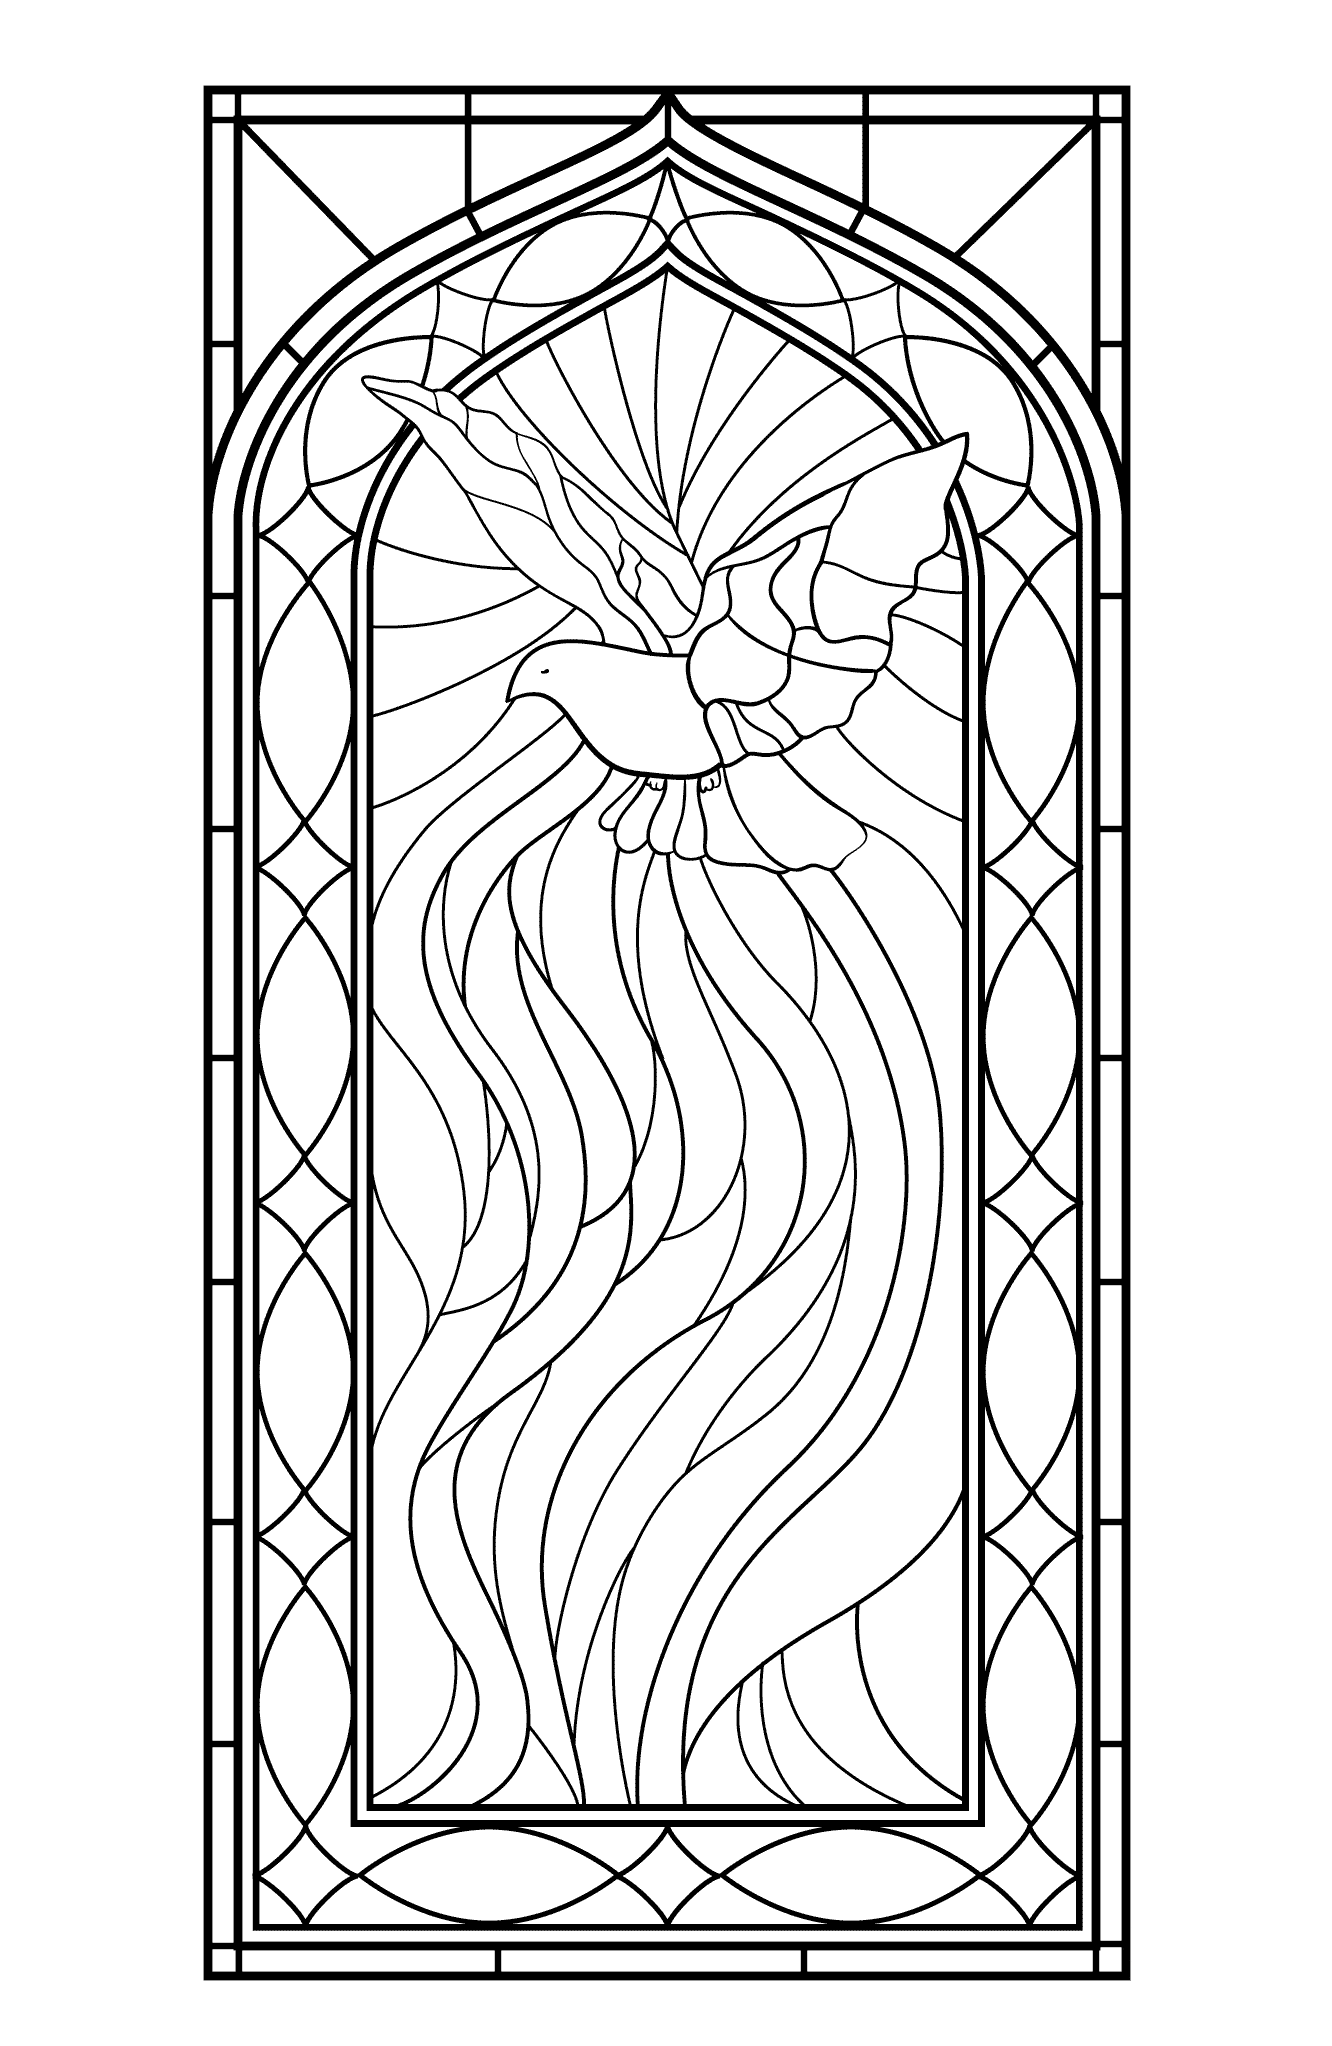 stained glass coloring pages for adults stained glass coloring pages for adults best coloring for coloring pages stained glass adults